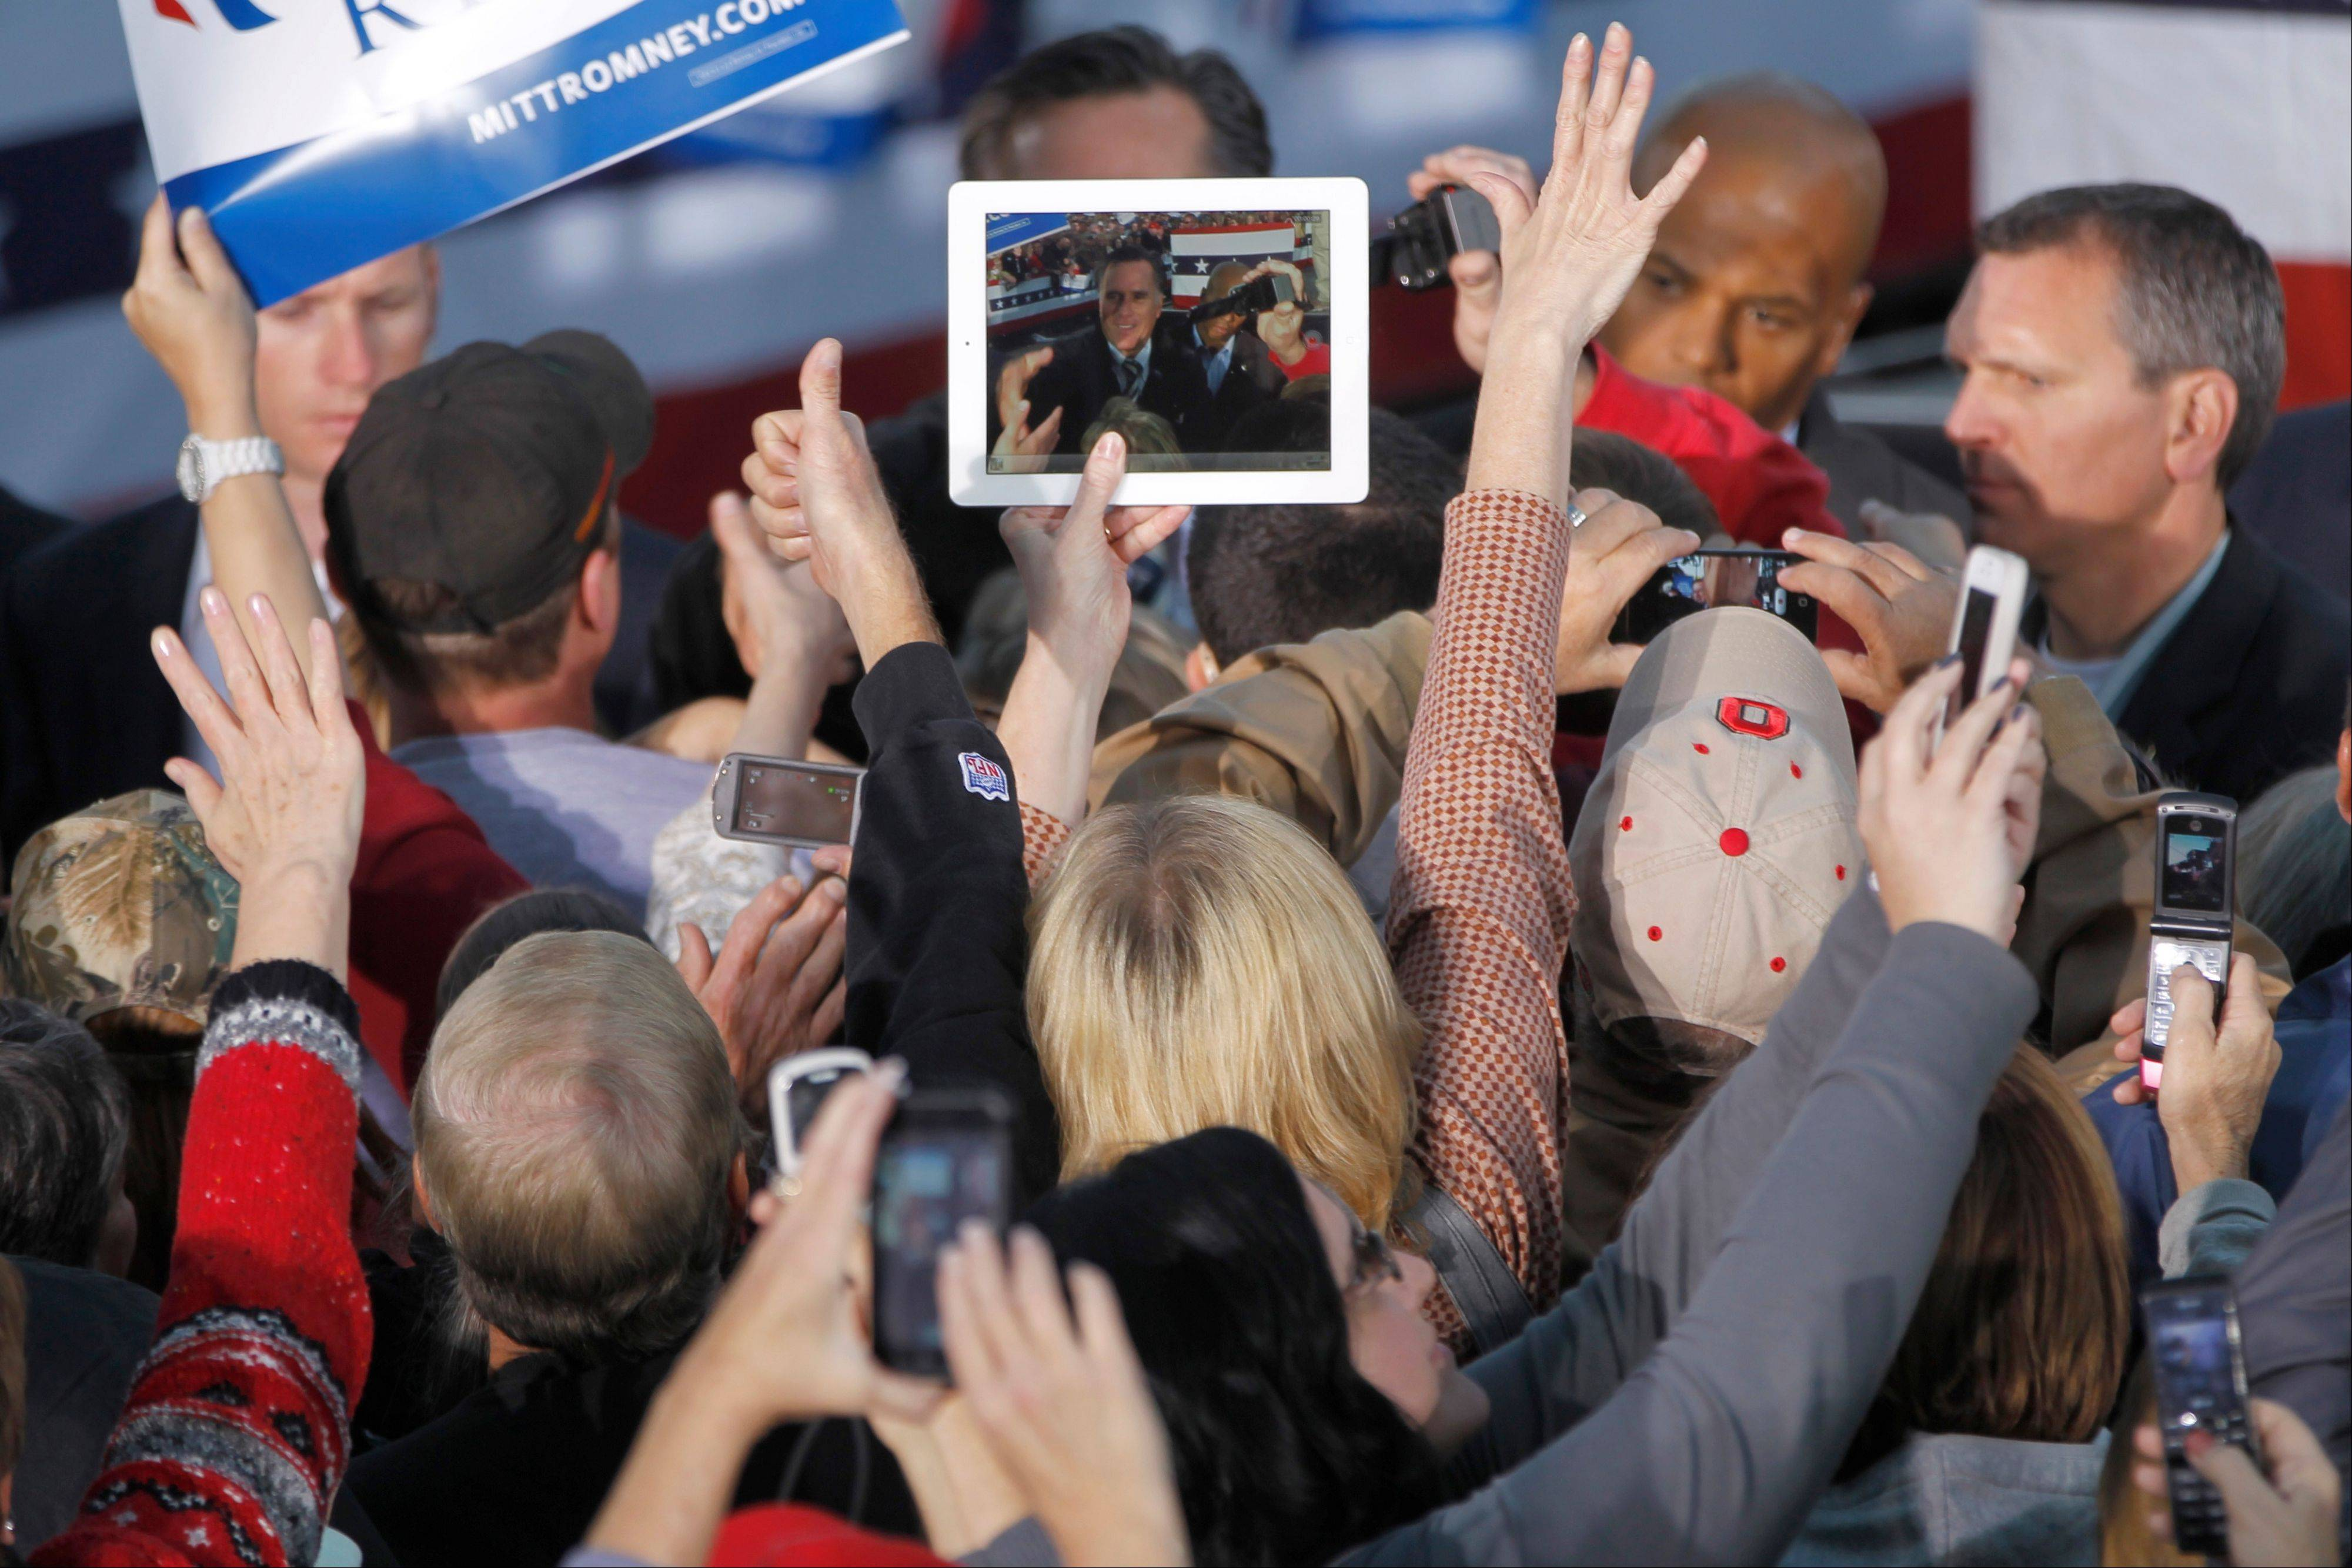 Romney crowds are surging as Election Day nears